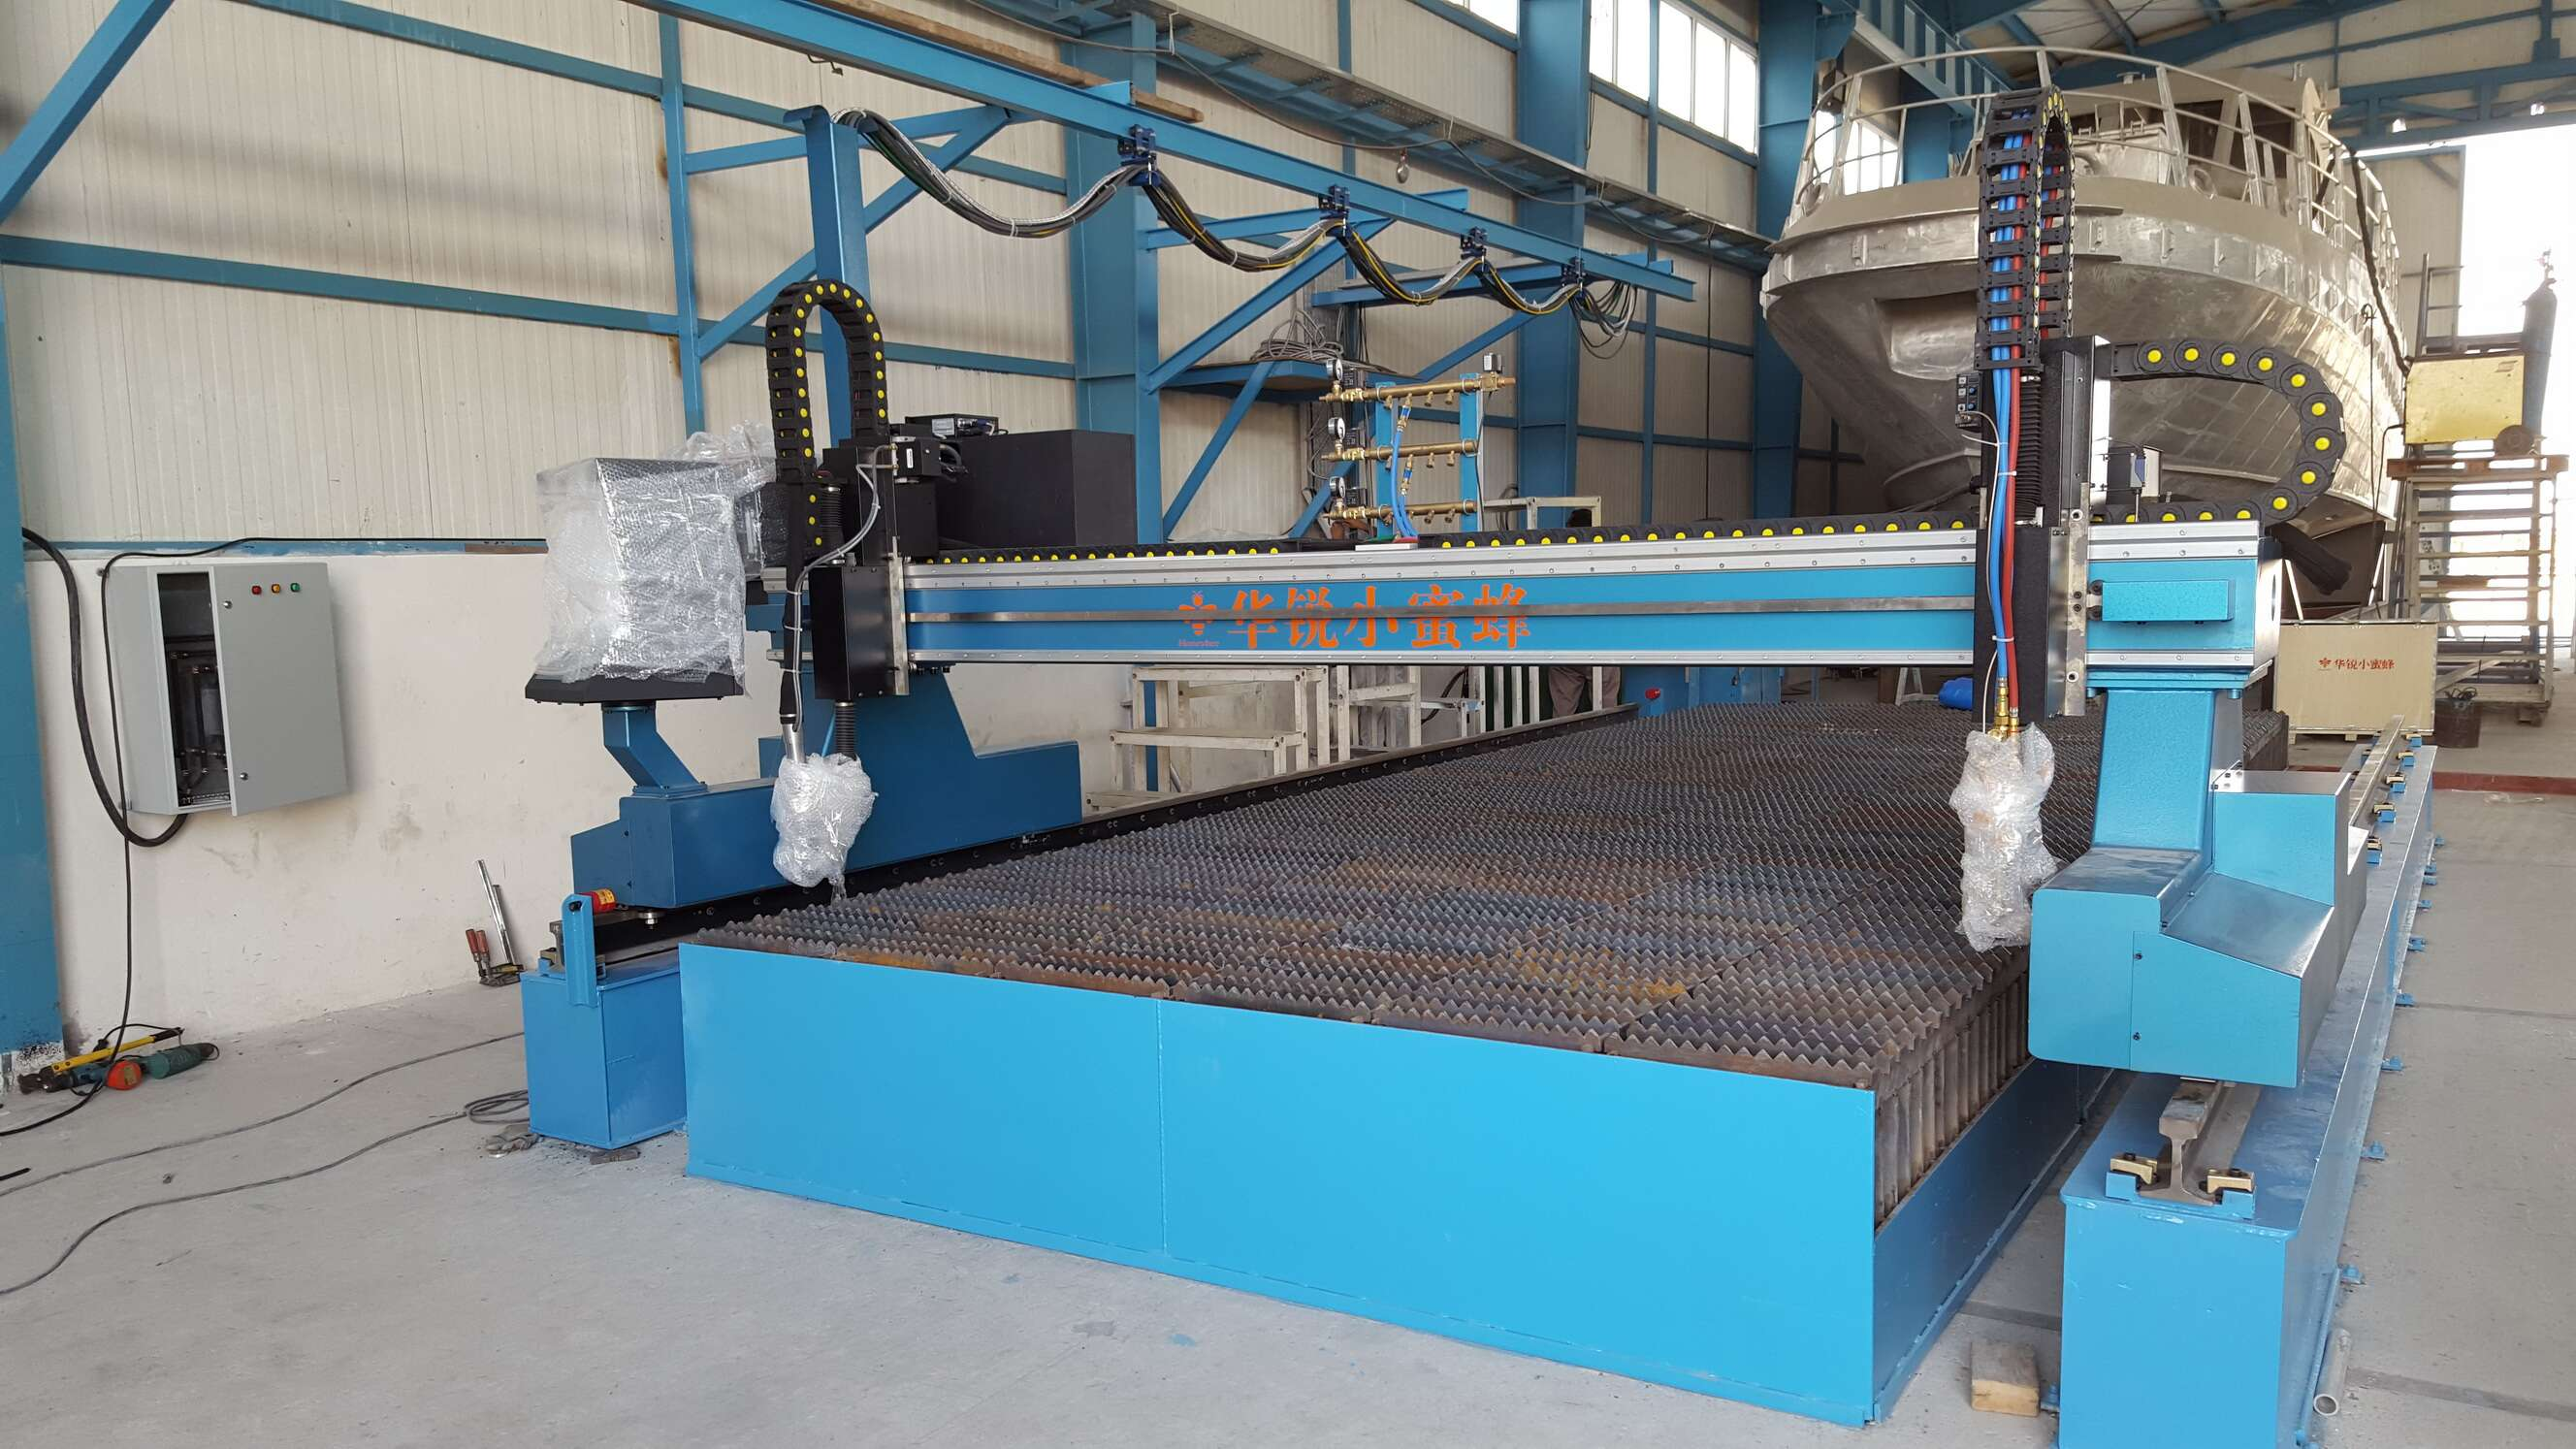 victor UC 300 together with our cnc cutting machine for aluminum cutting